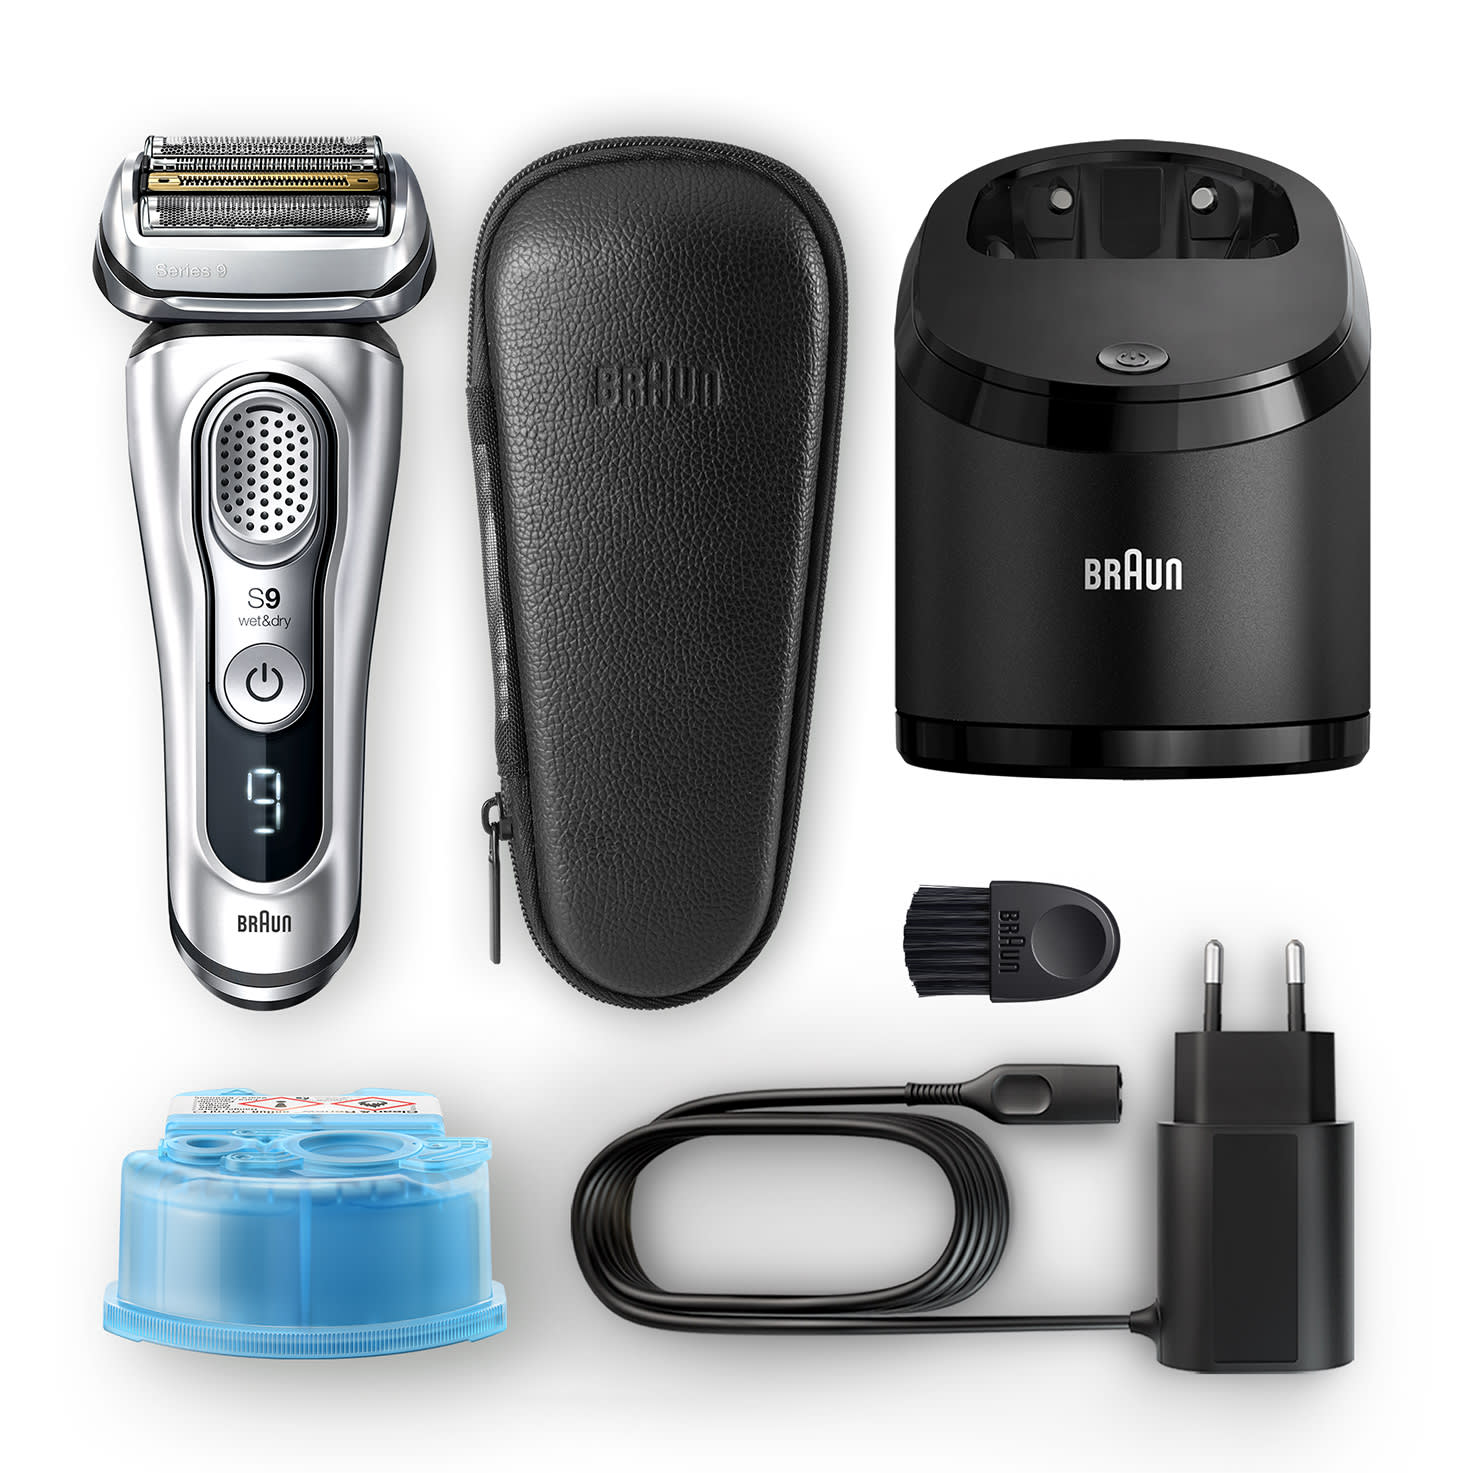 Series 9 9390cc shaver - What´s in the box